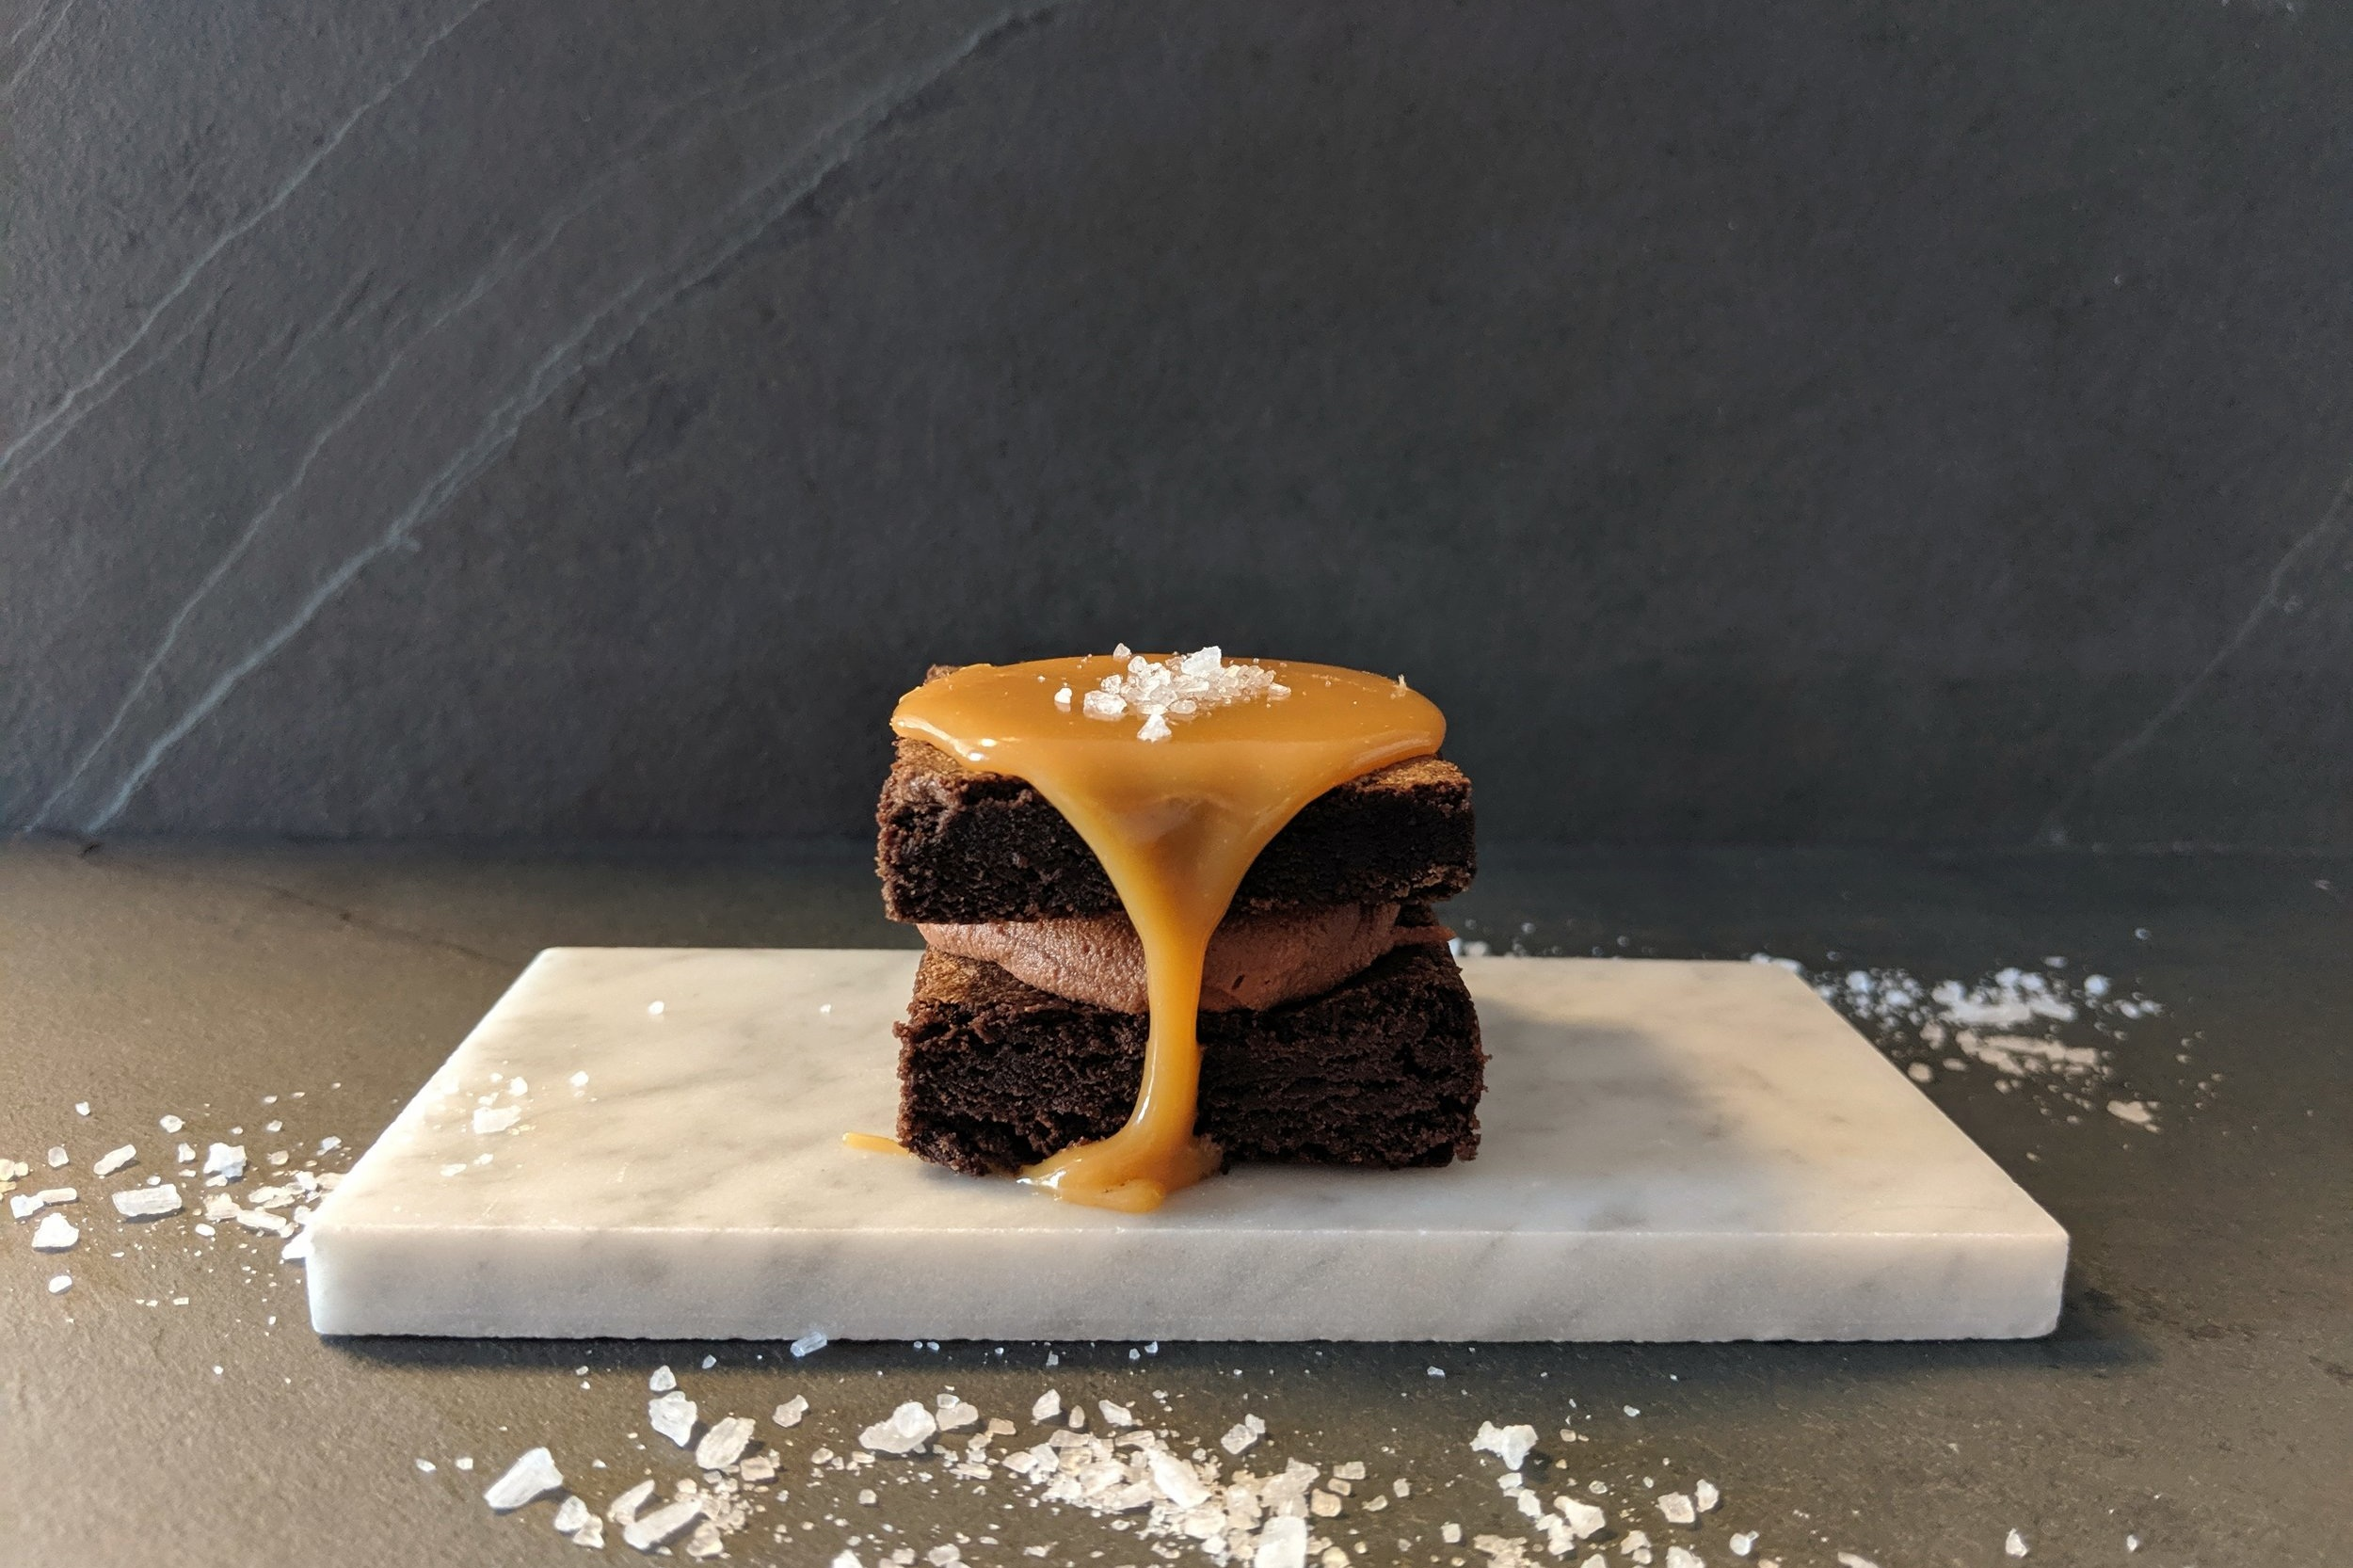 SALTED CARAMEL! - RICH BUTTERY CARAMEL SAUCE WITH COARSE SEA SALT AND WHIPPED GANACHE